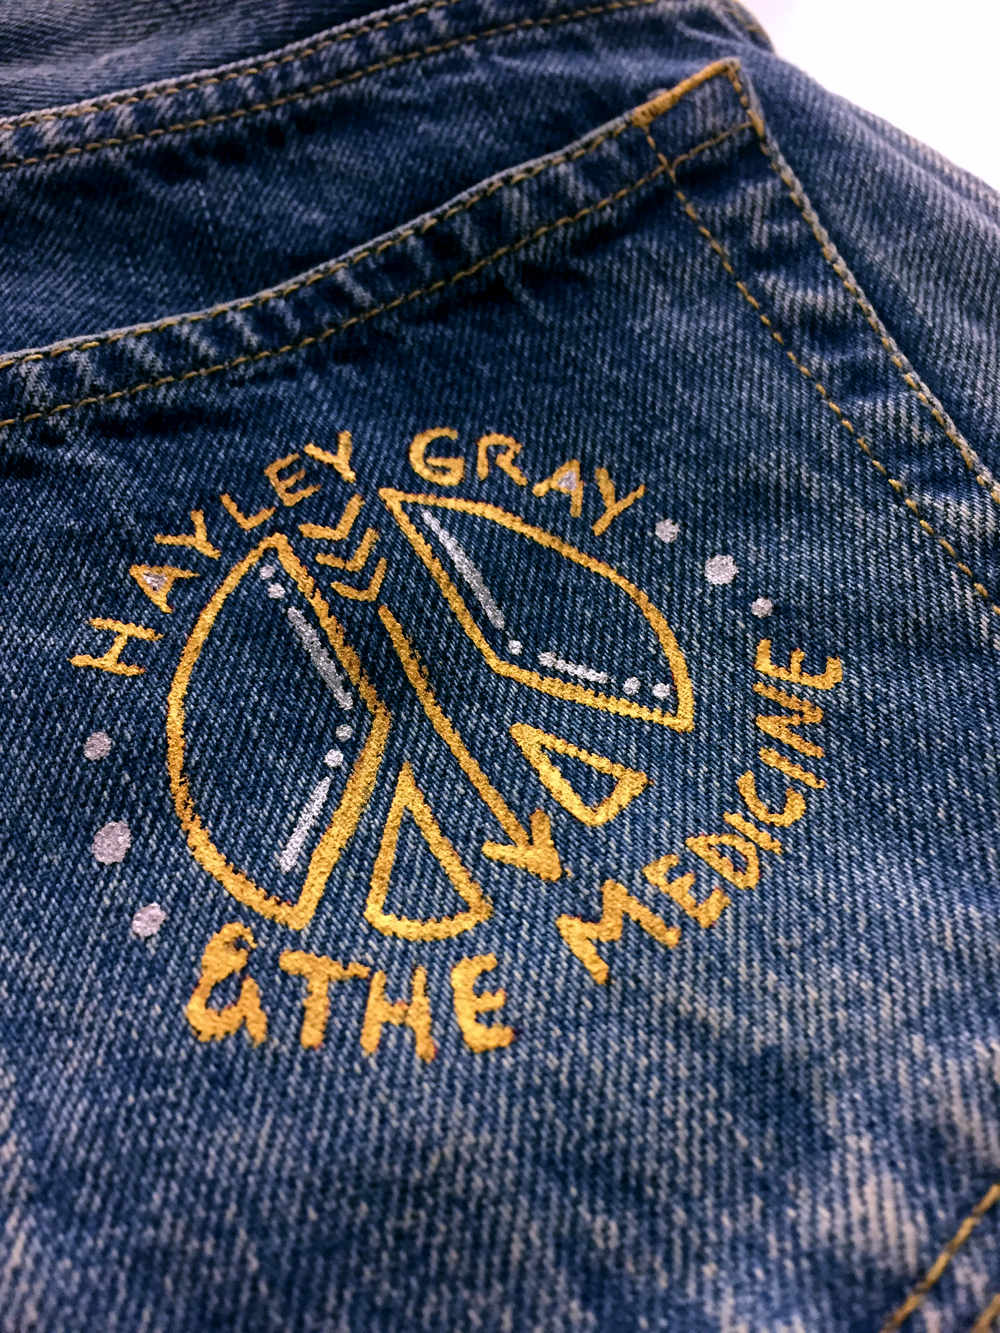 Custom design for a member of the band,  Haley Gray & The Medicine